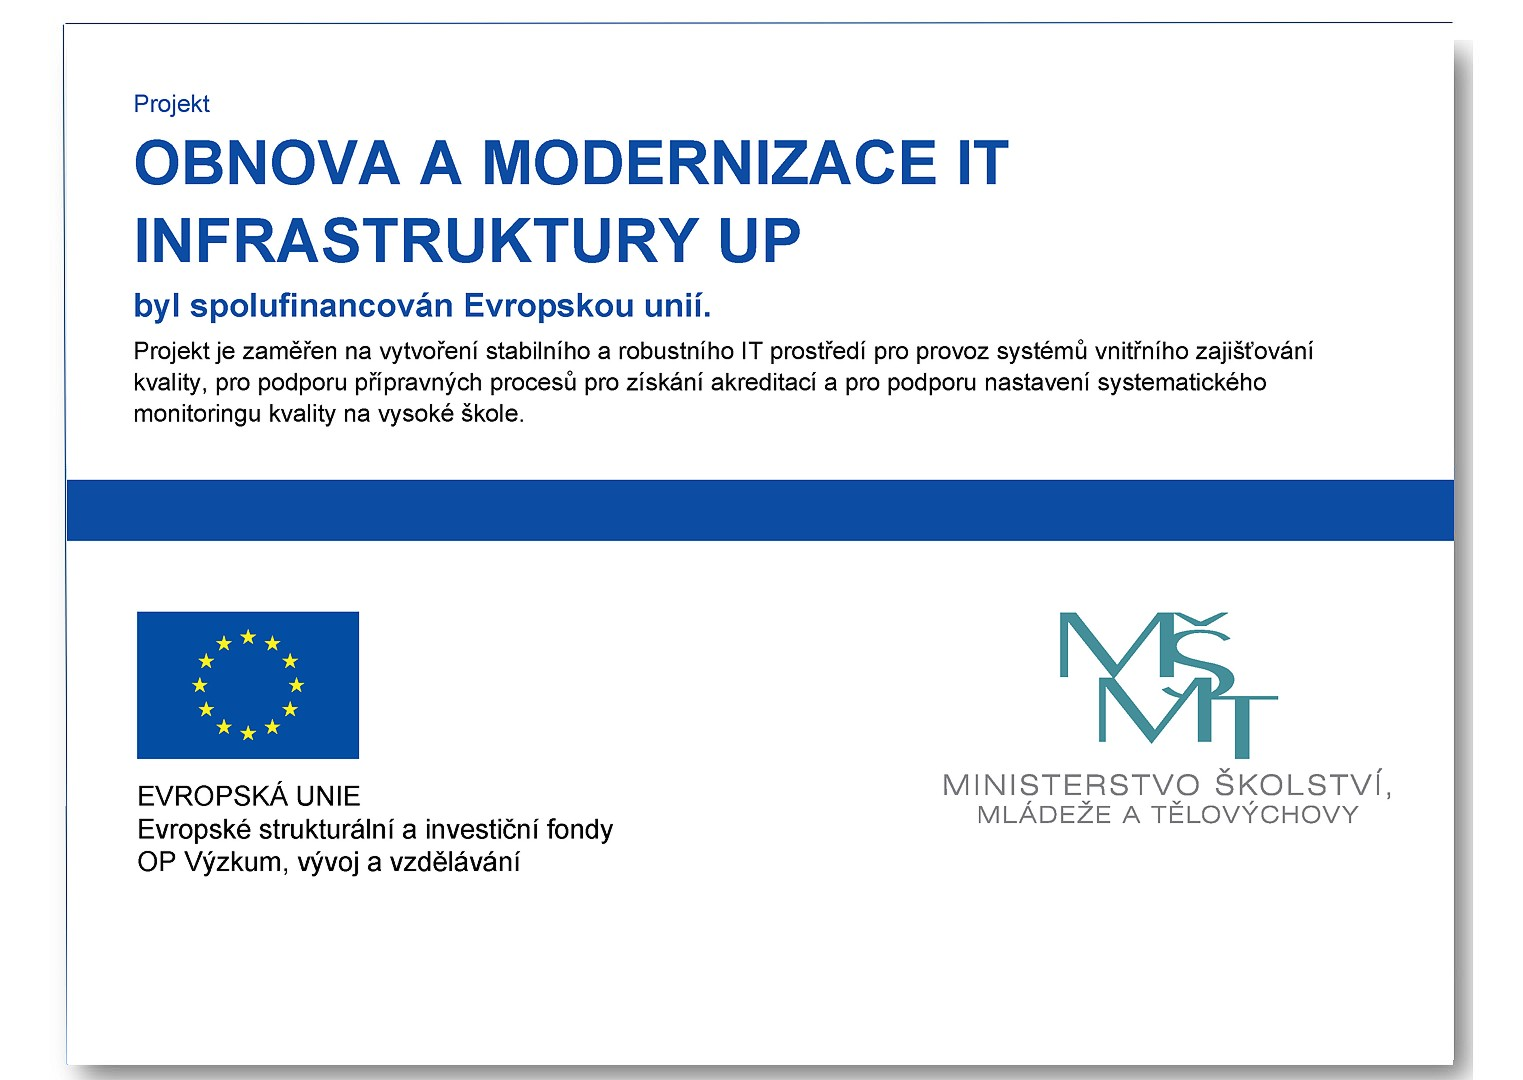 OBNOVA A MODERNIZACE IT INFRASTRUKTURY UP